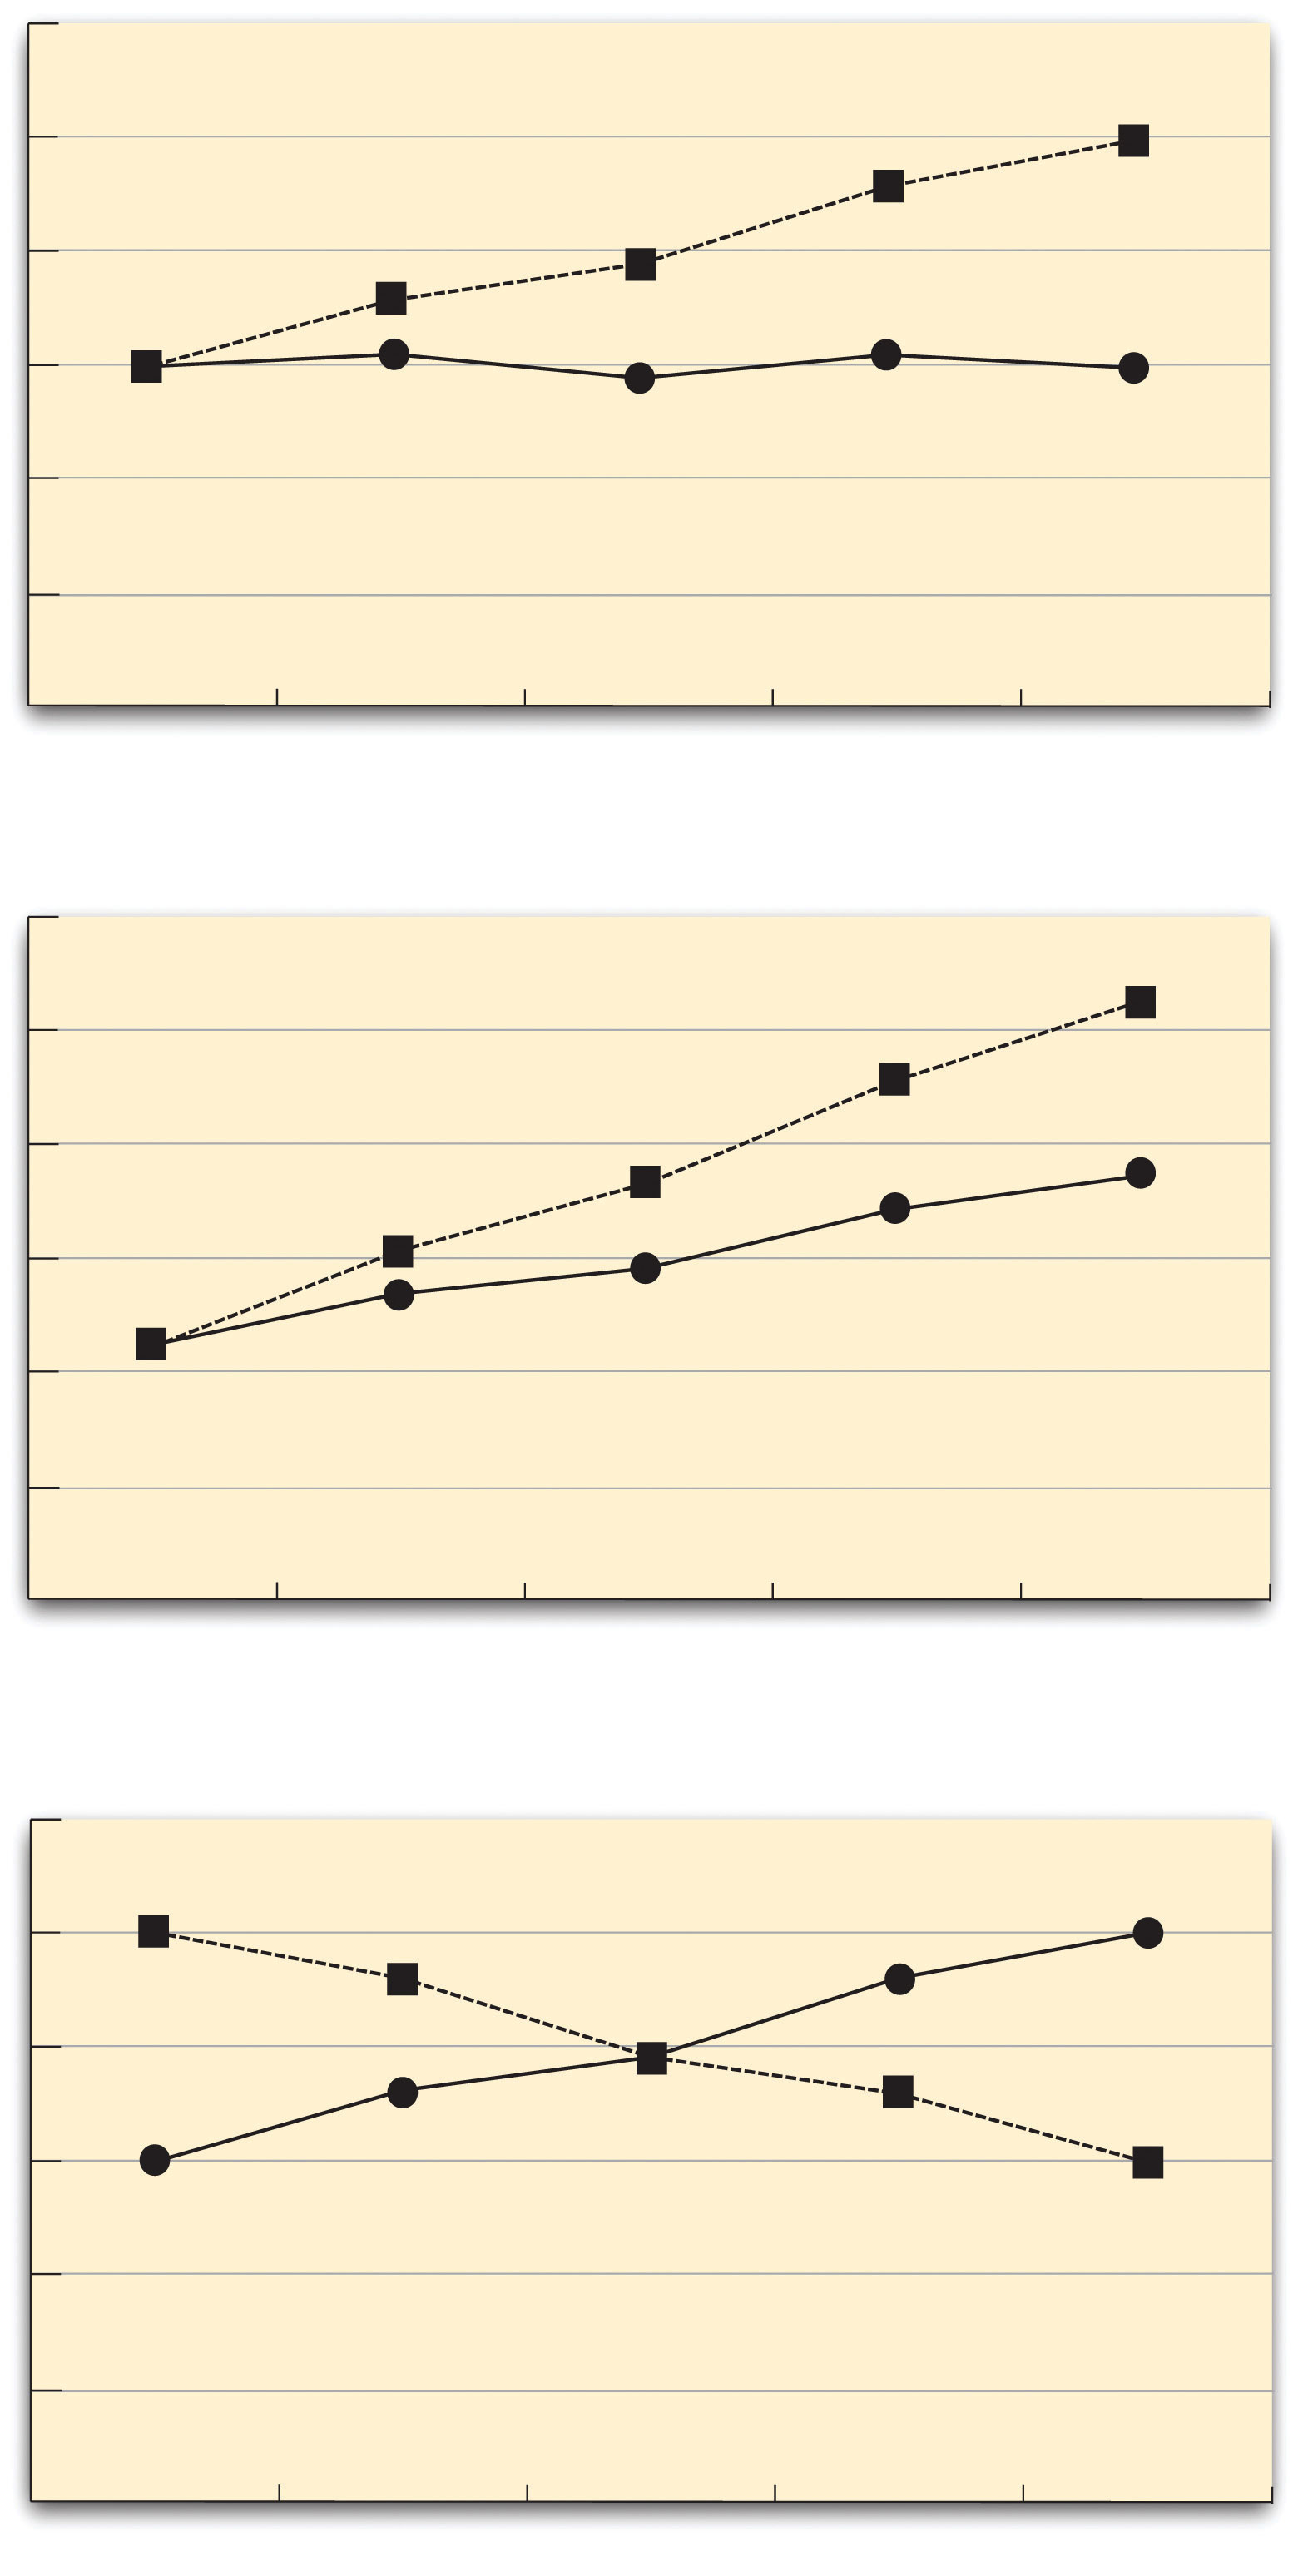 Line Graphs Showing Three Types of Interactions